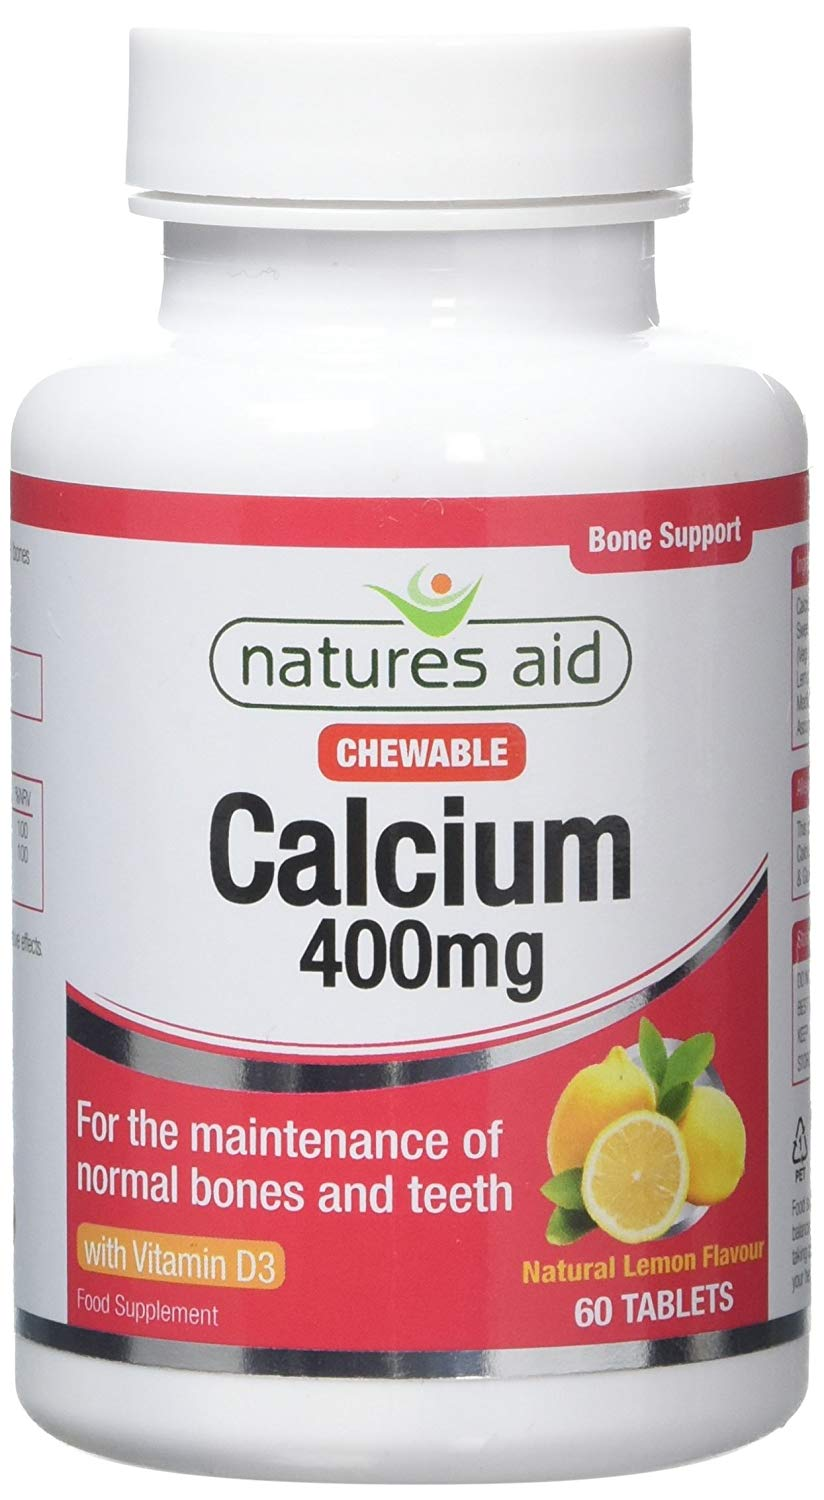 Natures Aid Chewable Calcium - 400mg - 60 Tablets